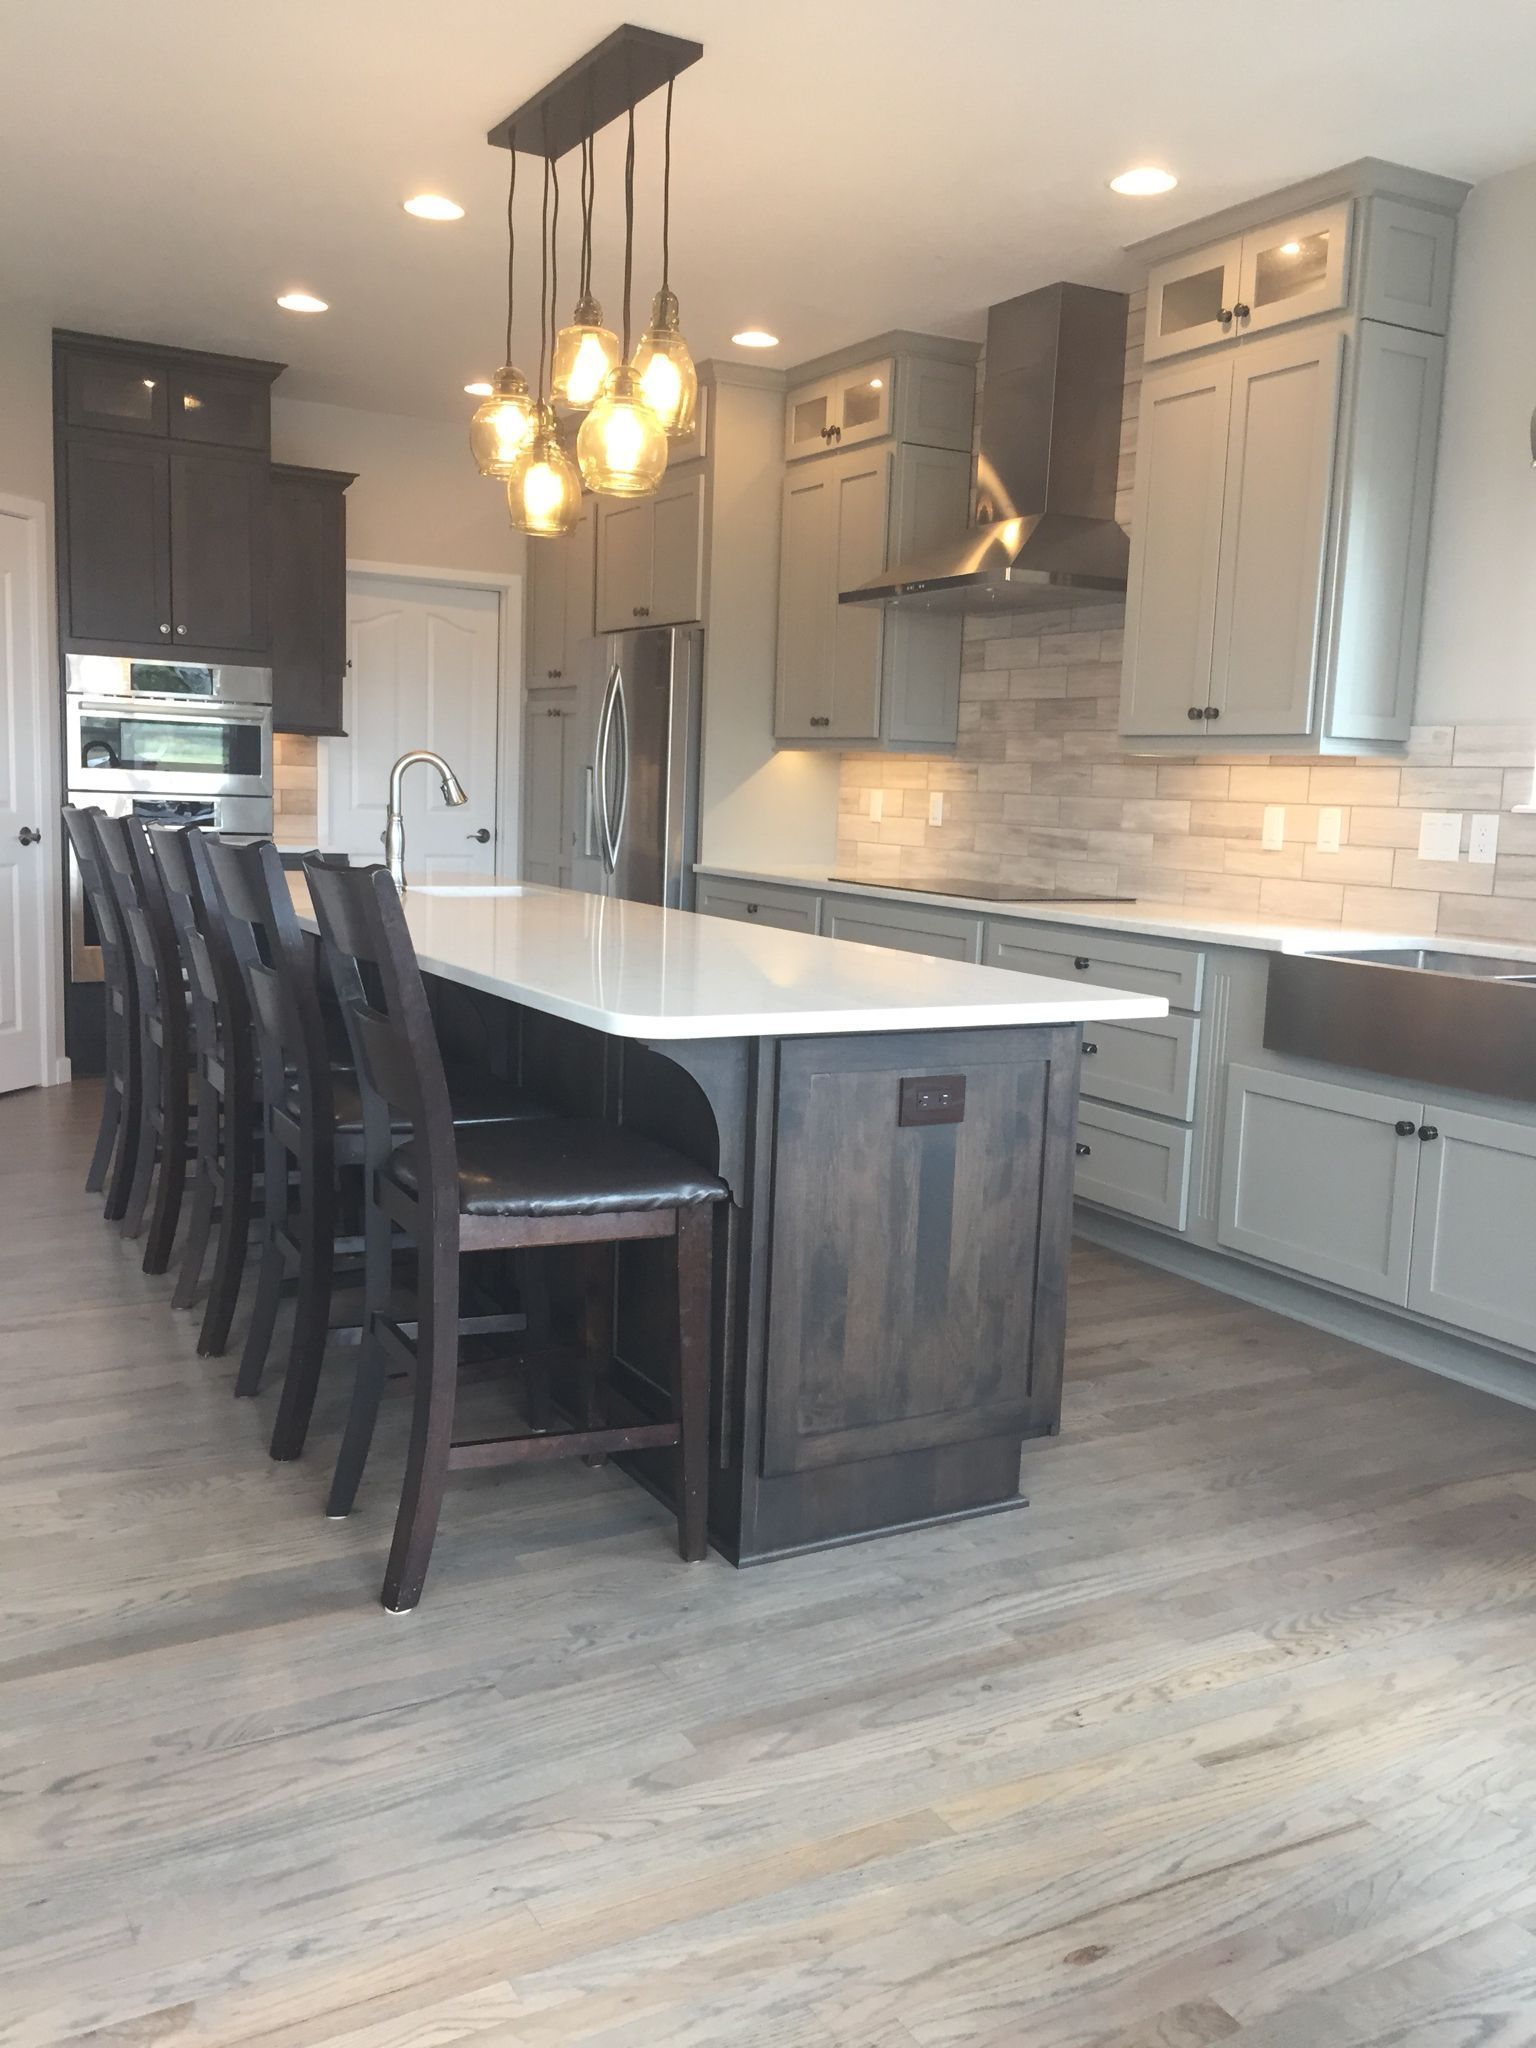 Kitchen Remodel Cabinets Custom Cupboards In Mocha And